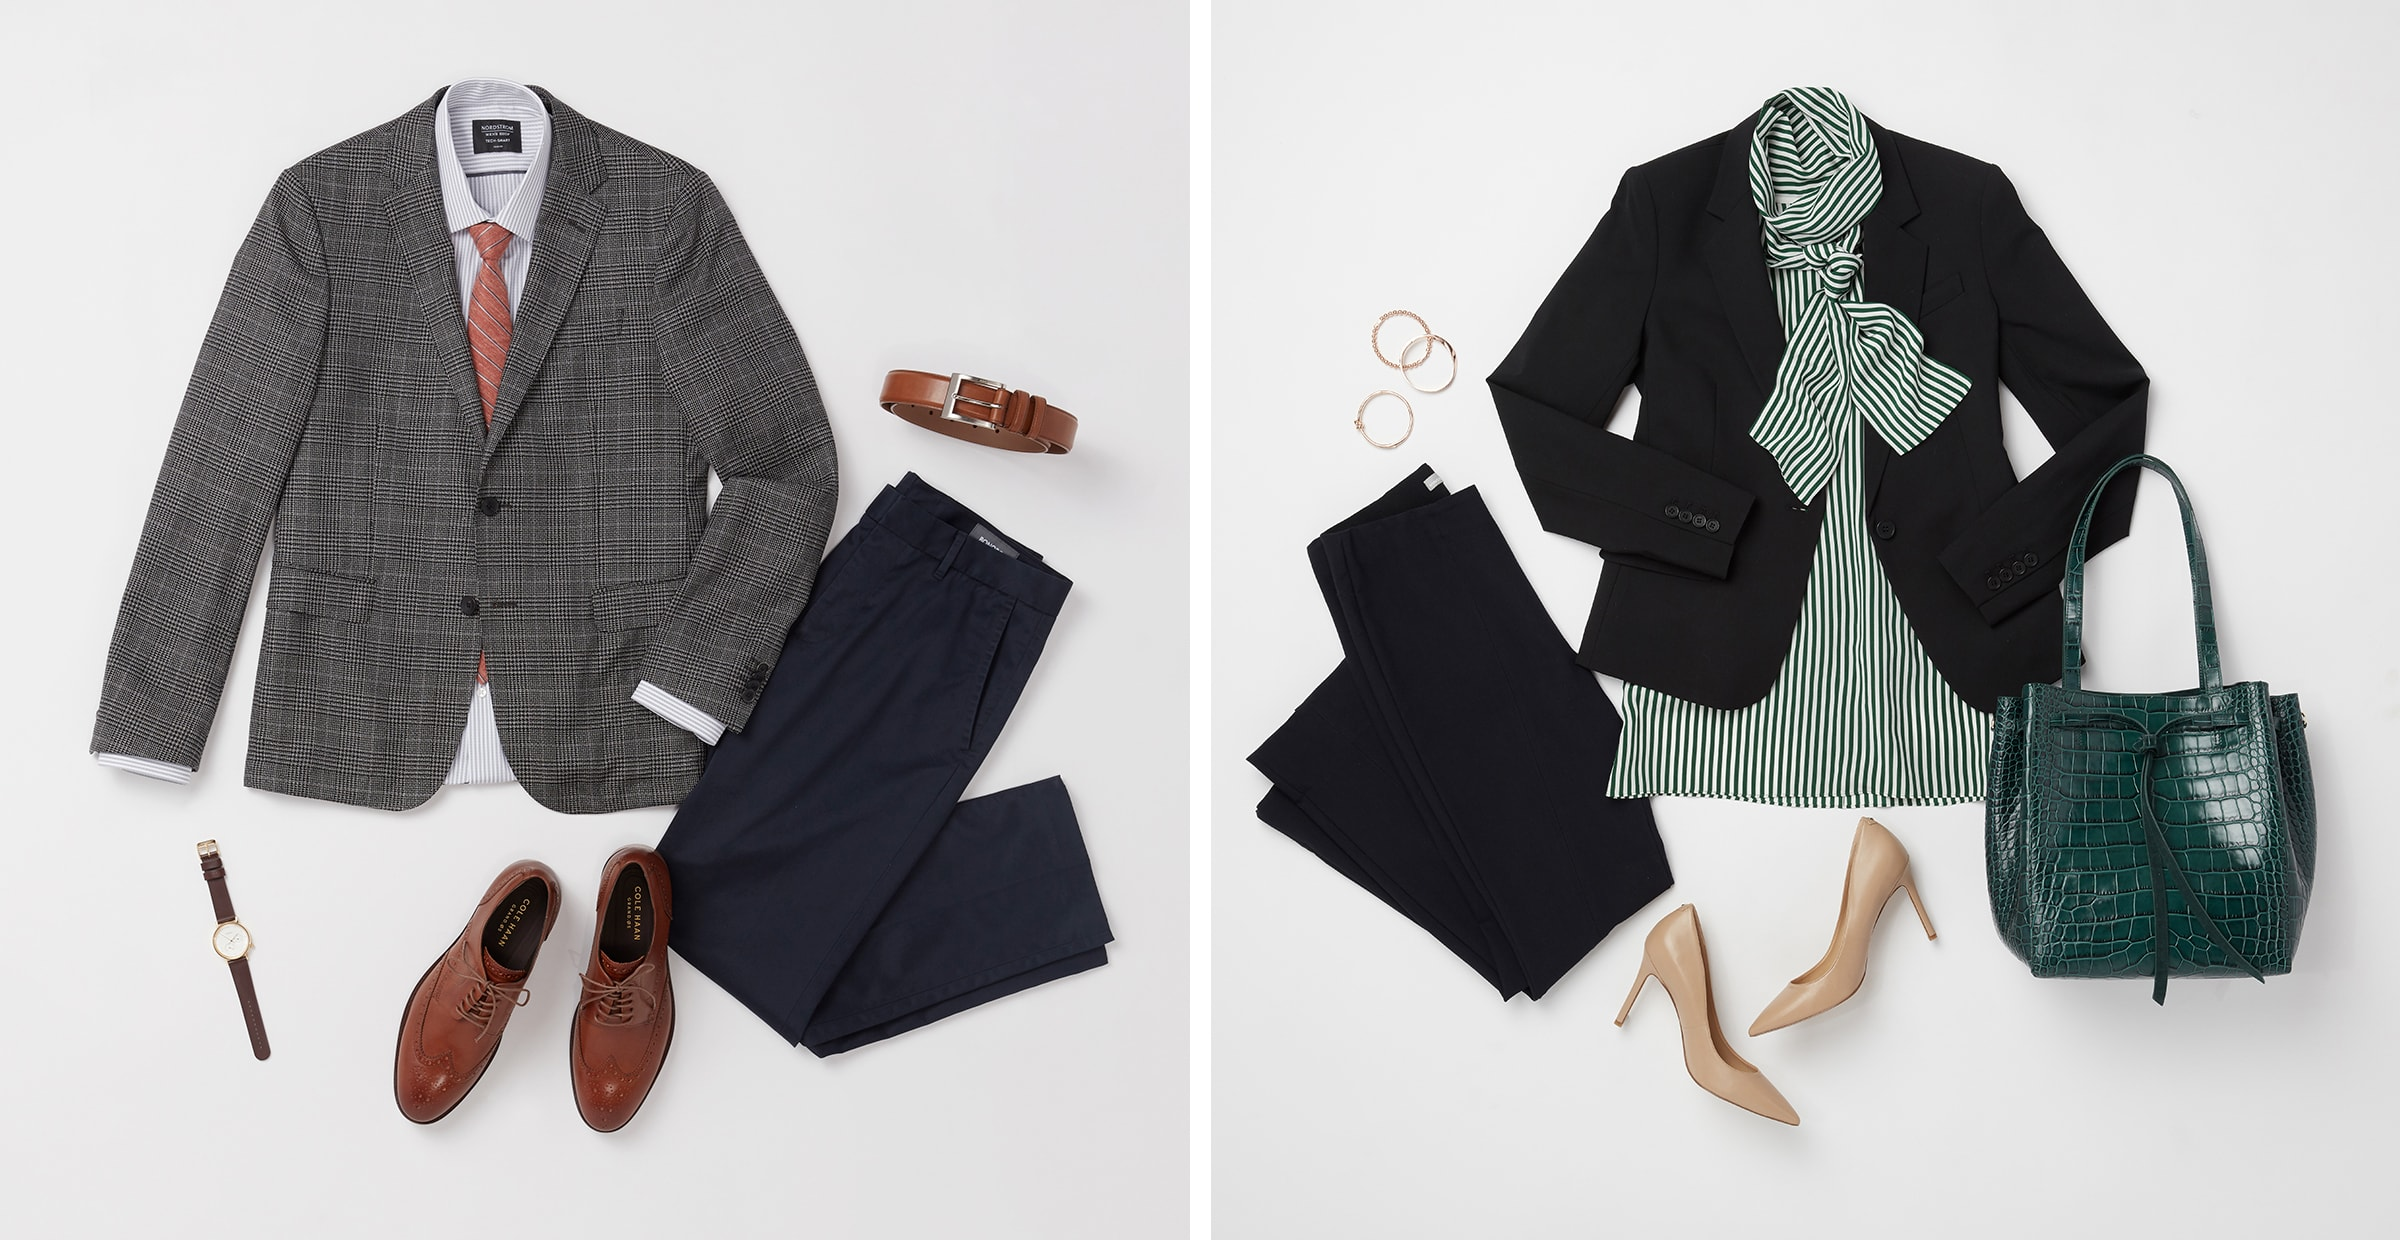 mens and womens interview outfits